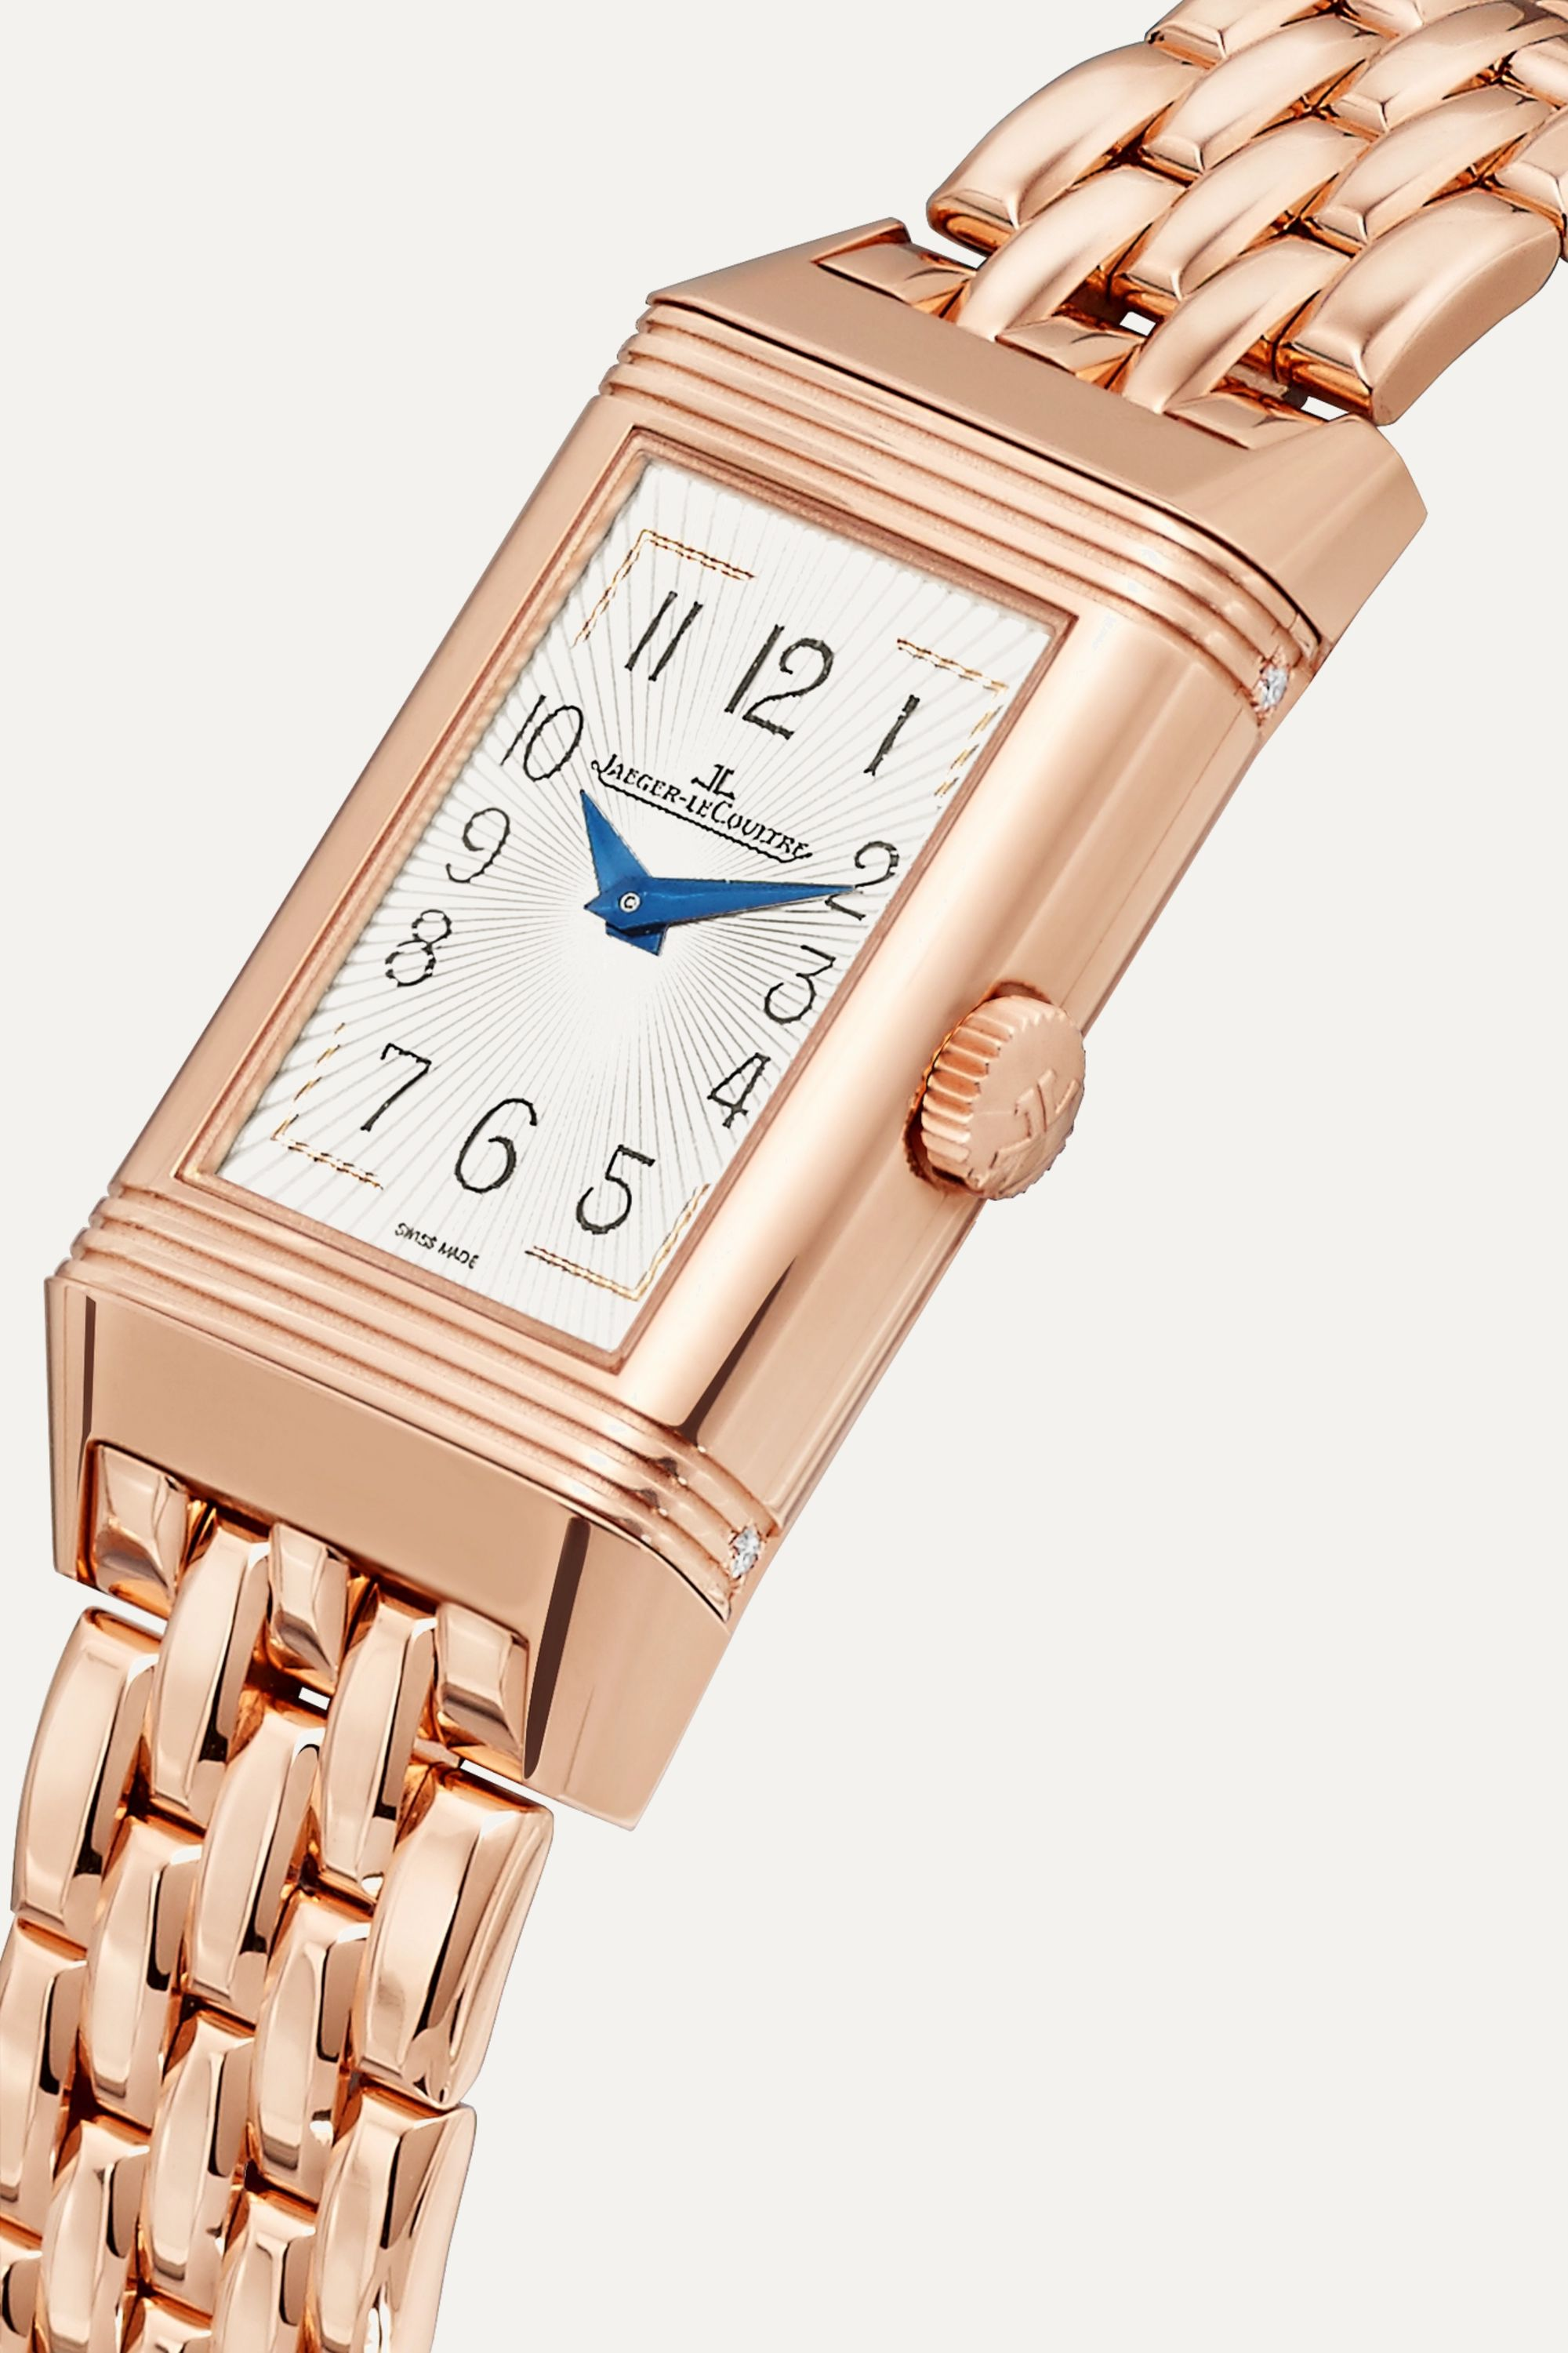 Jaeger-LeCoultre Reverso One Duetto Moon 20mm rose gold and diamond watch